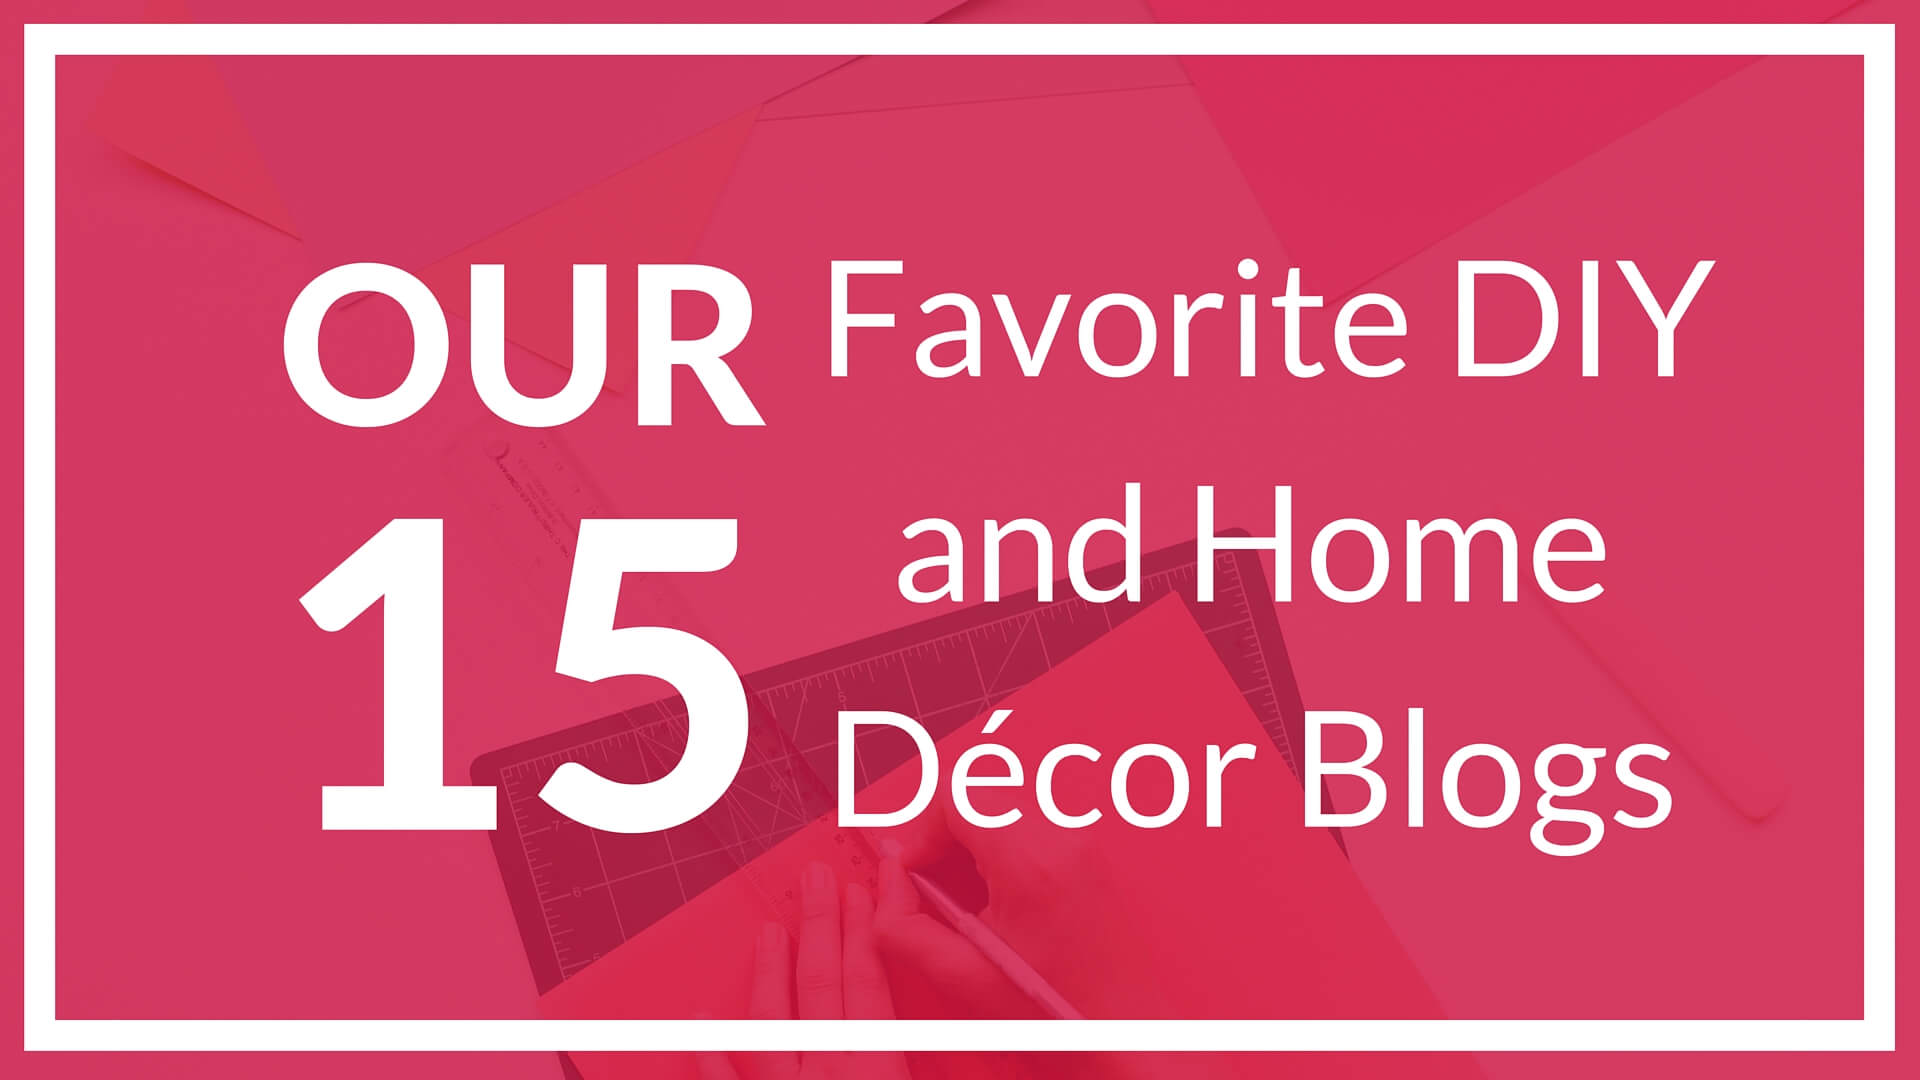 Our 15 favorite diy and home d cor blogs mark spain real for Best diy home decor blogs